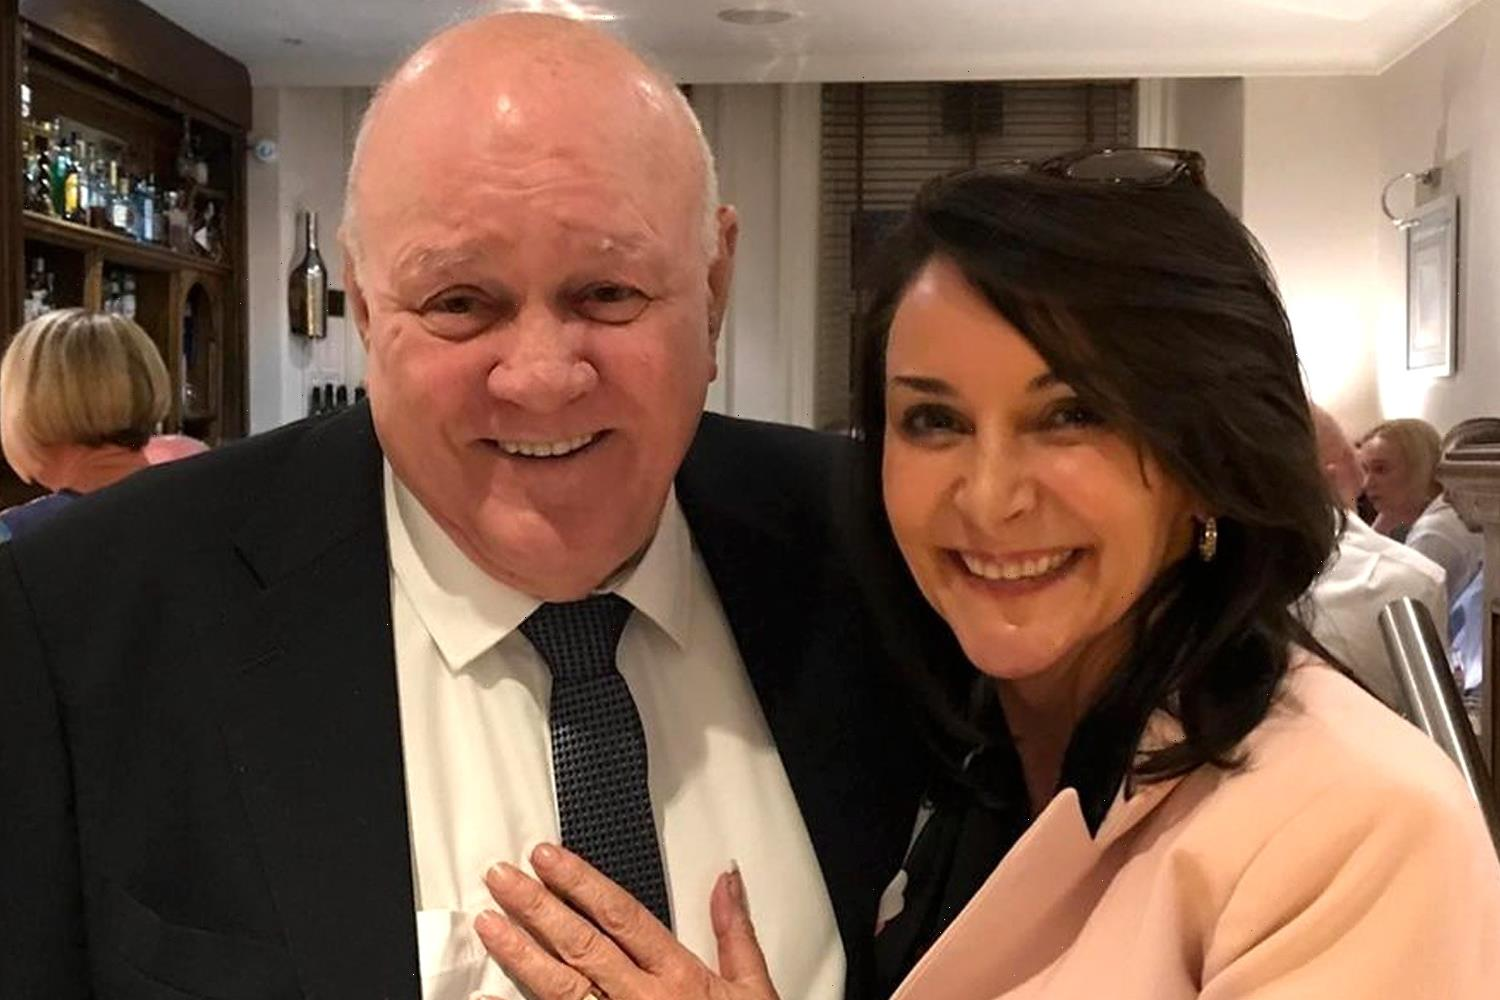 Strictly's Shirley Ballas reveals heartbreak as her dad dies aged 83 with 'so many things left unsaid'